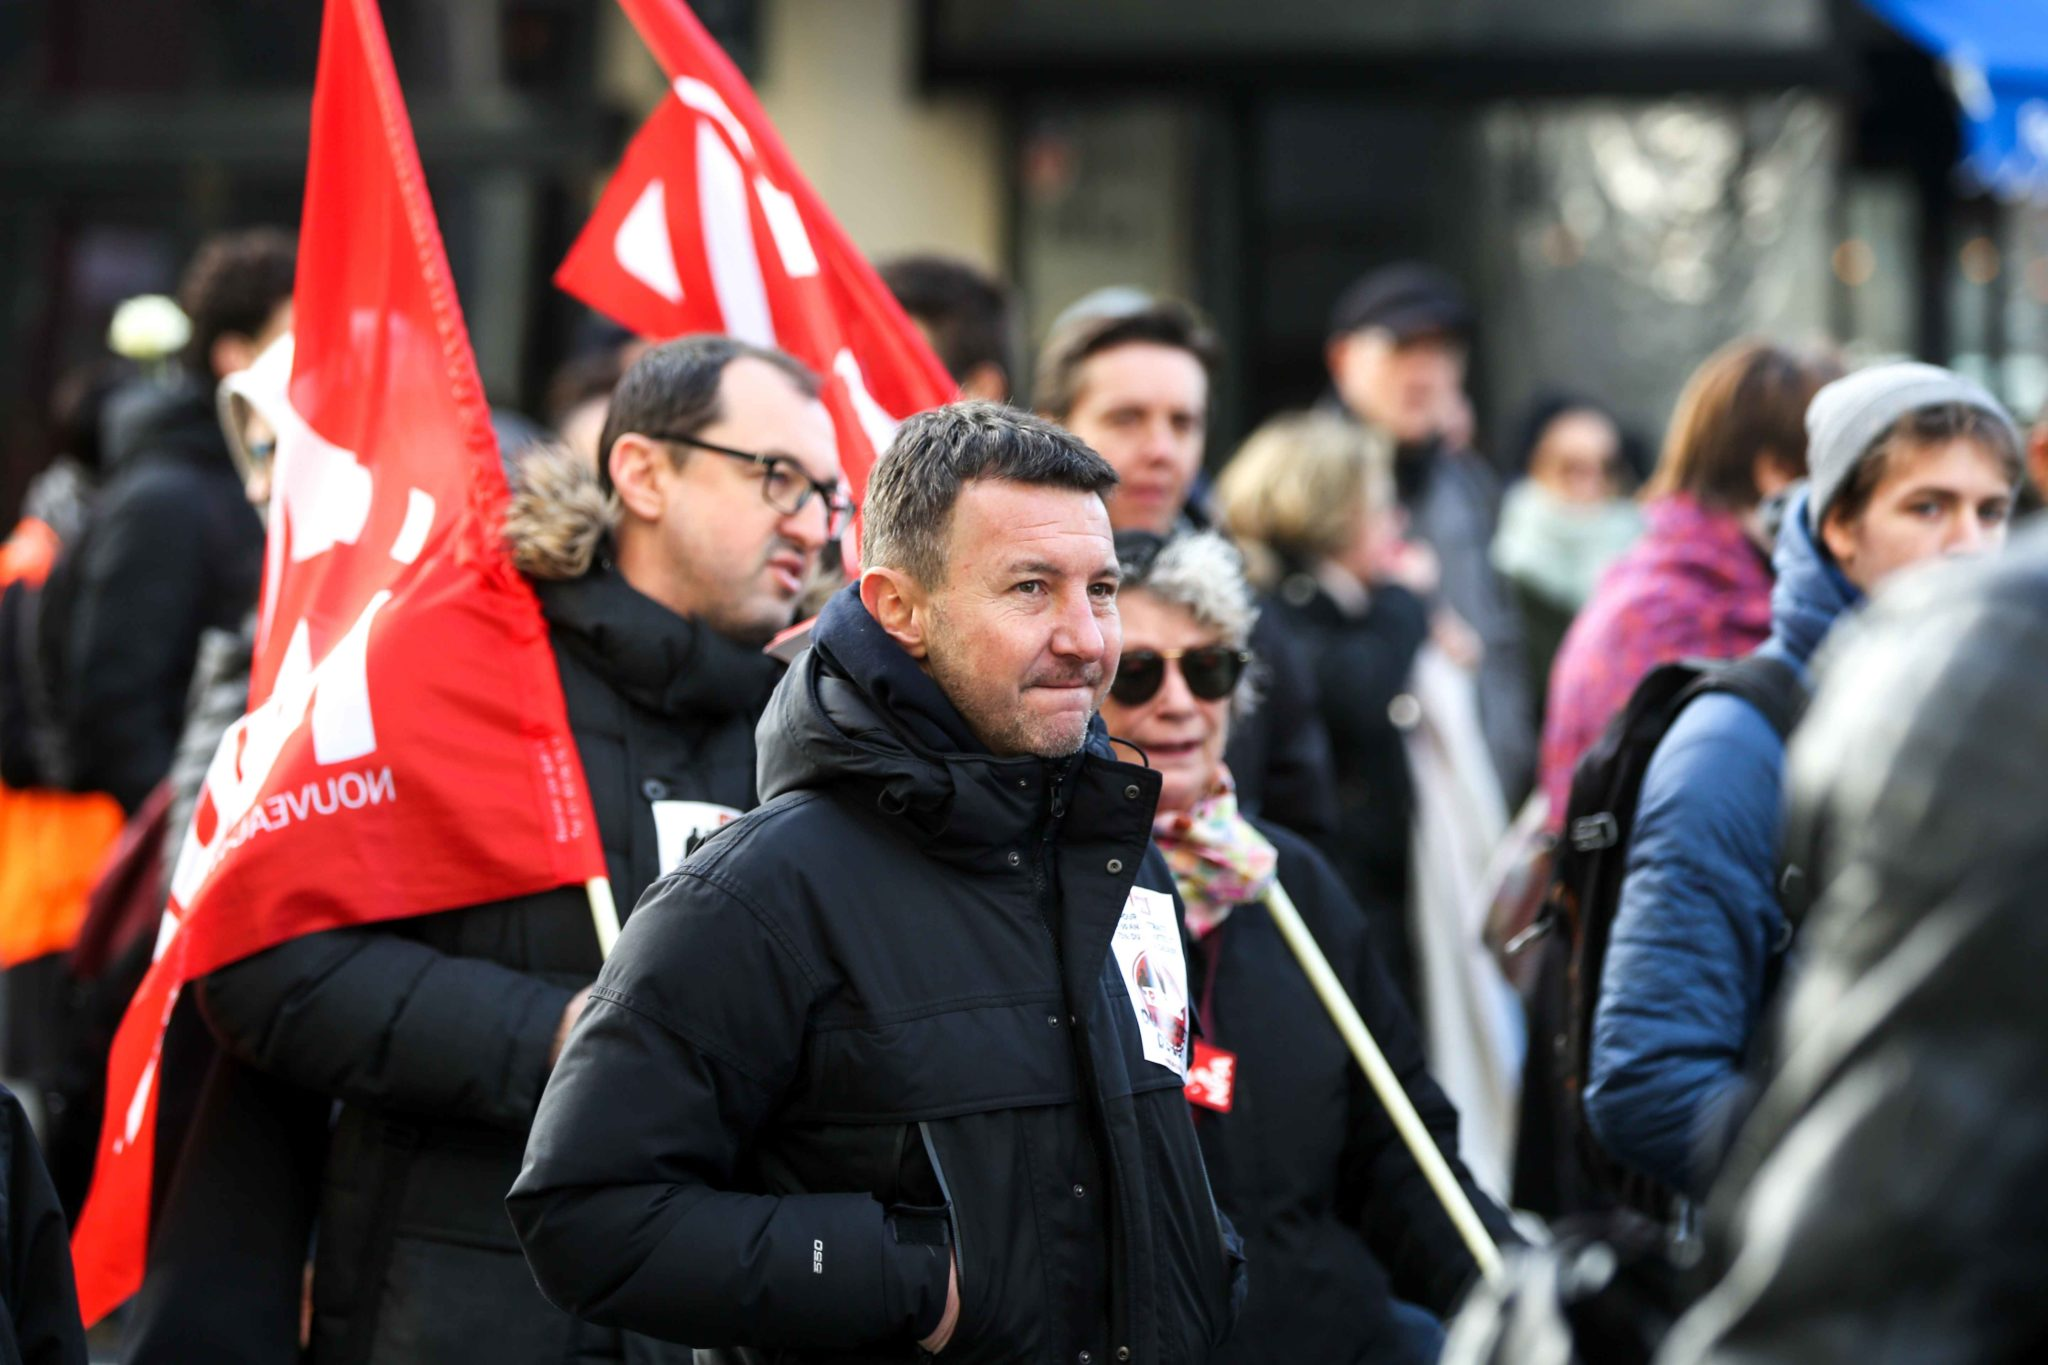 Spokesperson of French far-left party NPA Olivier Besancenot (C) takes part in a demonstration called by French national trade union General Confederation of Labour (CGT) against the pension reform on January 4, 2020, in front of the Gare de Lyon train sta